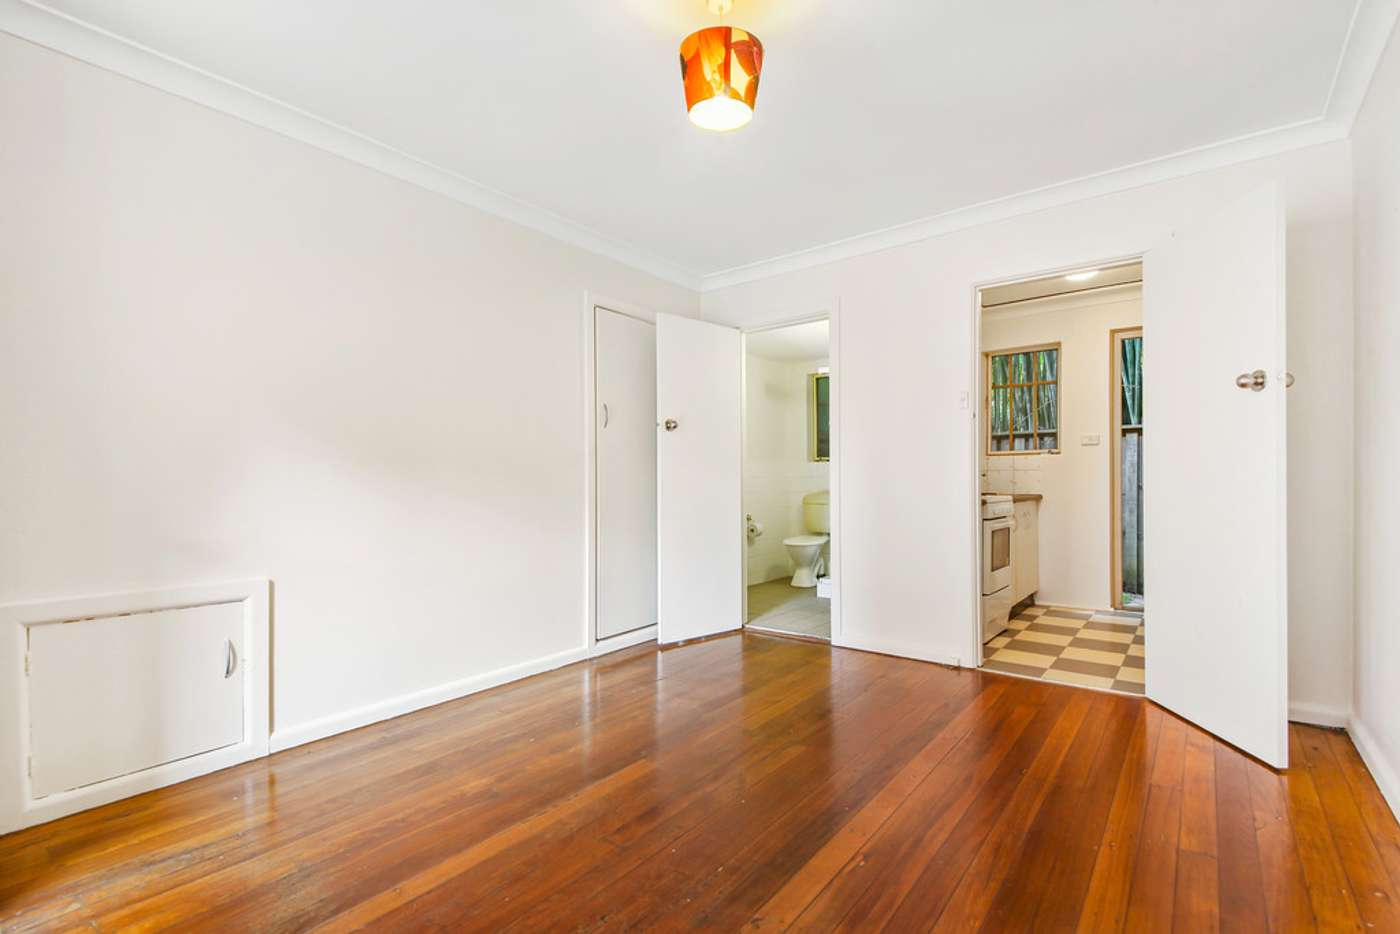 Main view of Homely studio listing, 16/30-32 Bucknell Street, Newtown NSW 2042